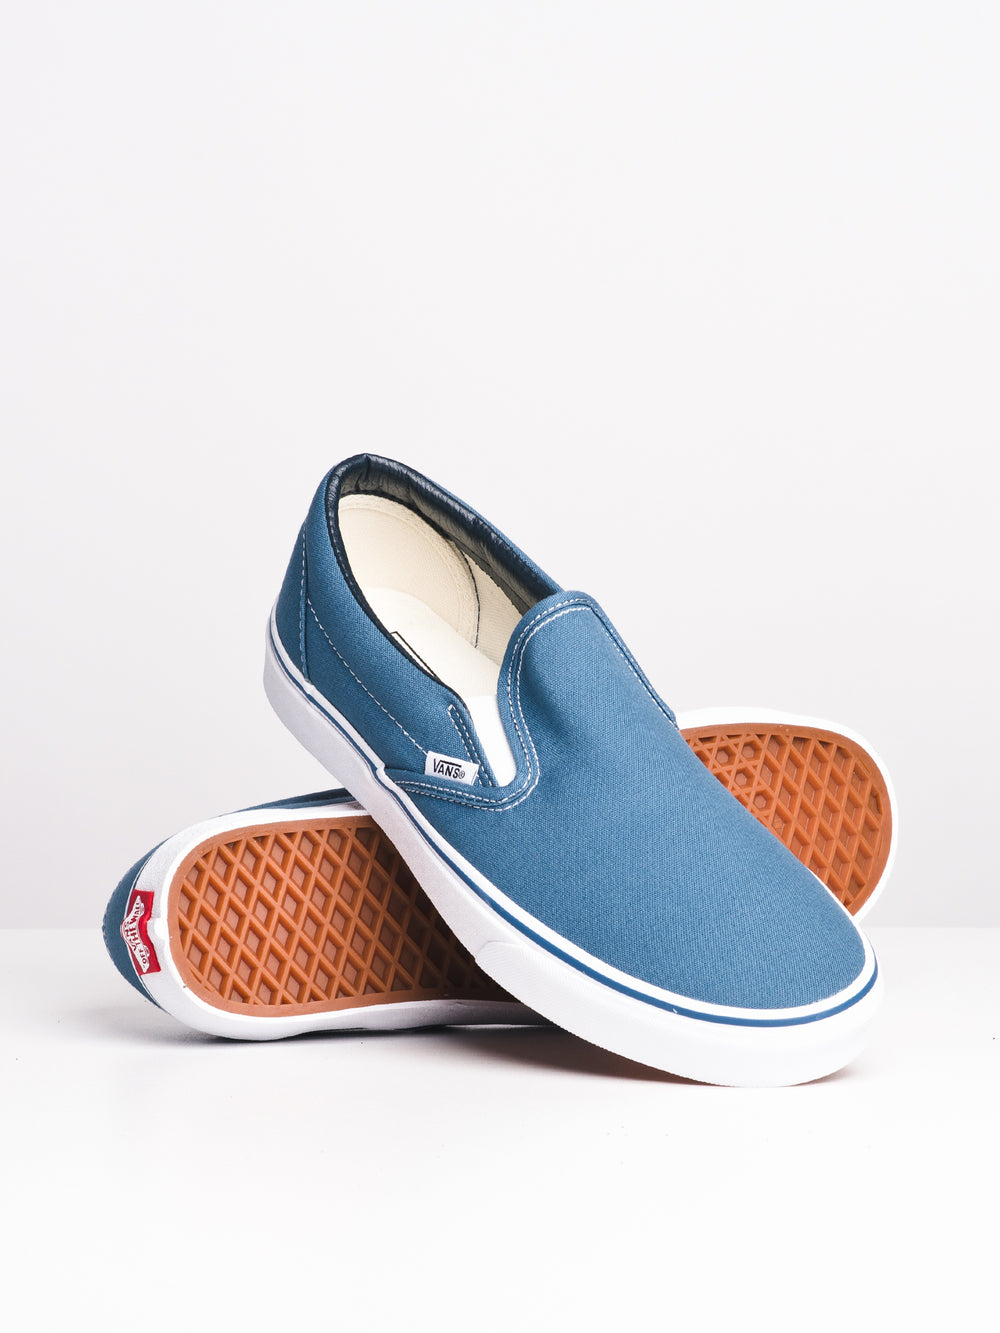 MENS CLASSIC SLIP ON NAVY CANVAS SHOES